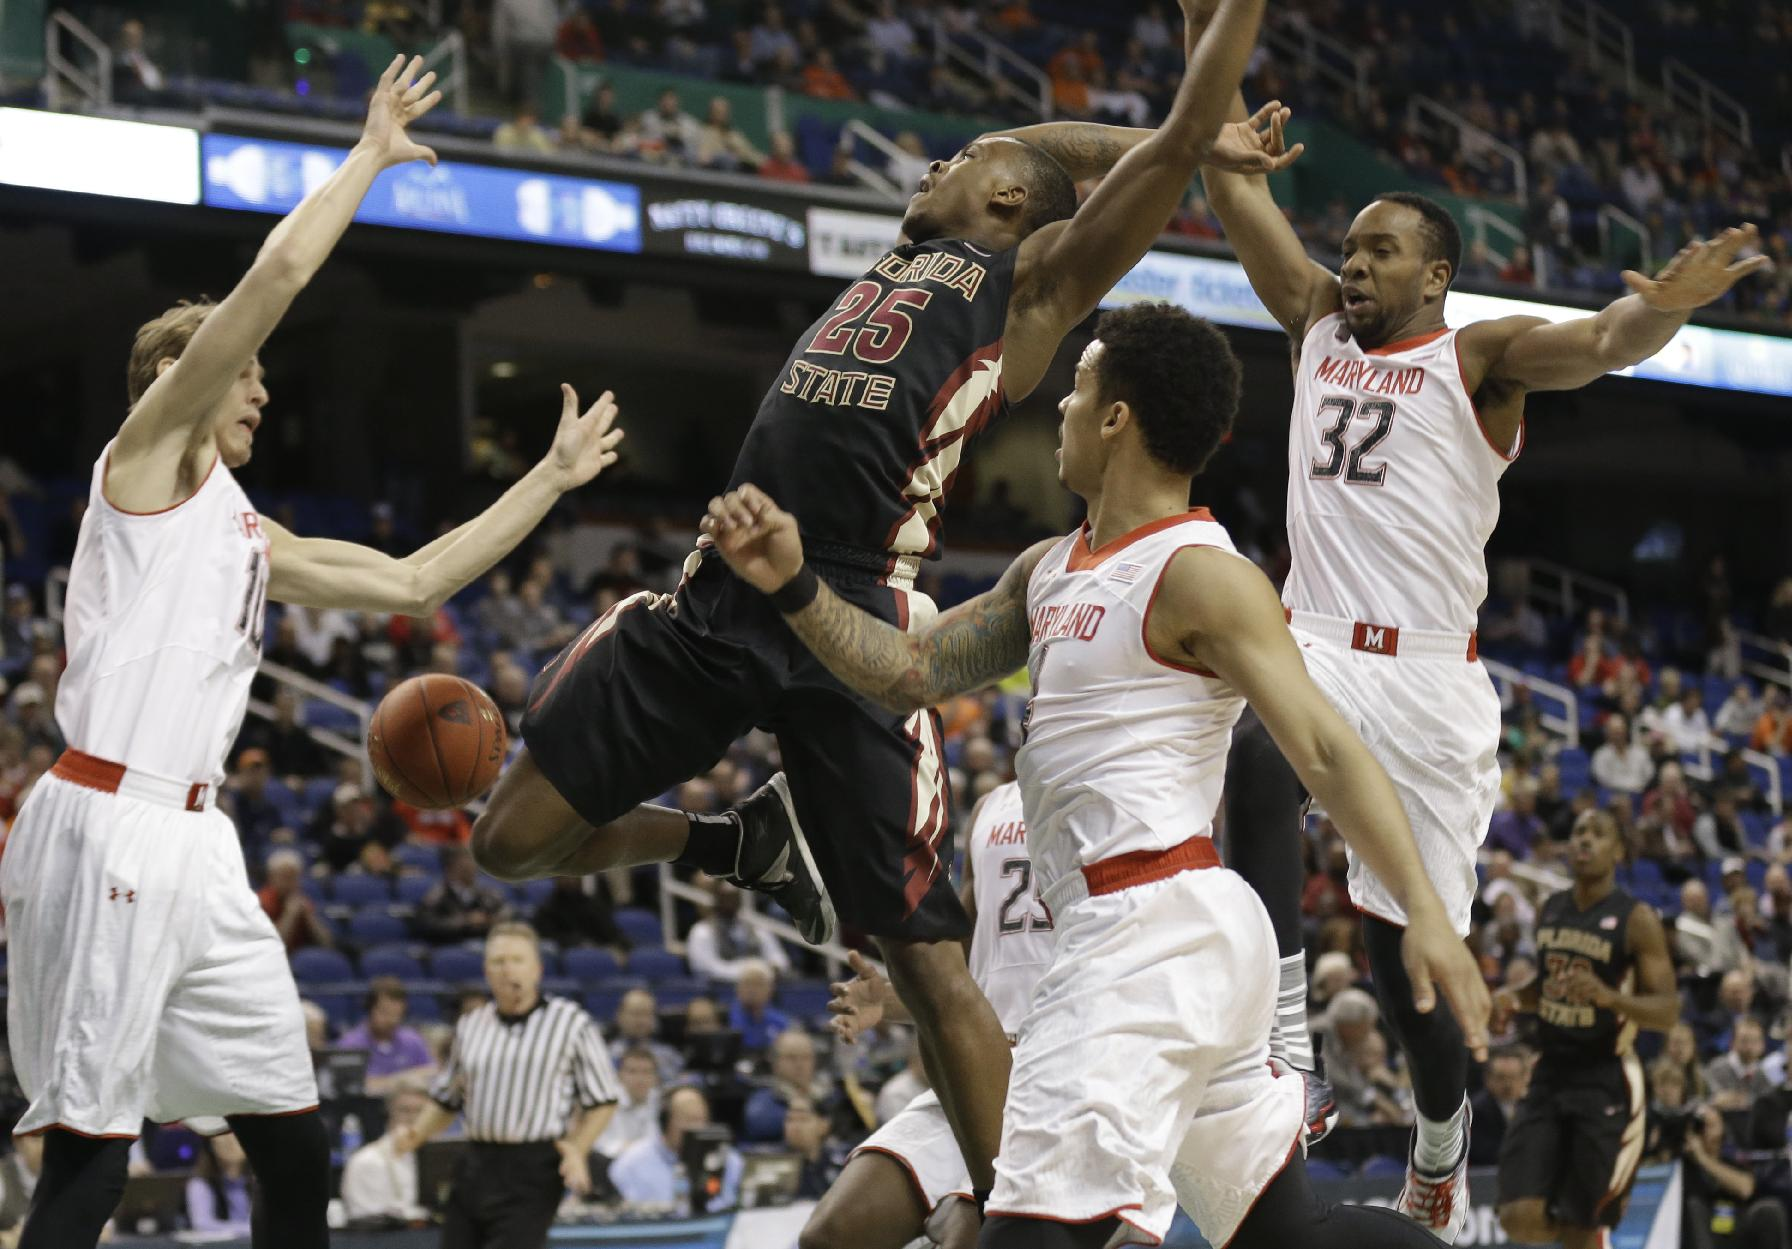 Florida State's Aaron Thomas (25) is fouled as he drives between Maryland's Dez Wells (32), Jake Layman (10), and Seth Allen (4) during the first half of a second round NCAA college basketball game at the Atlantic Coast Conference tournament in Greensboro, N.C., Thursday, March 13, 2014